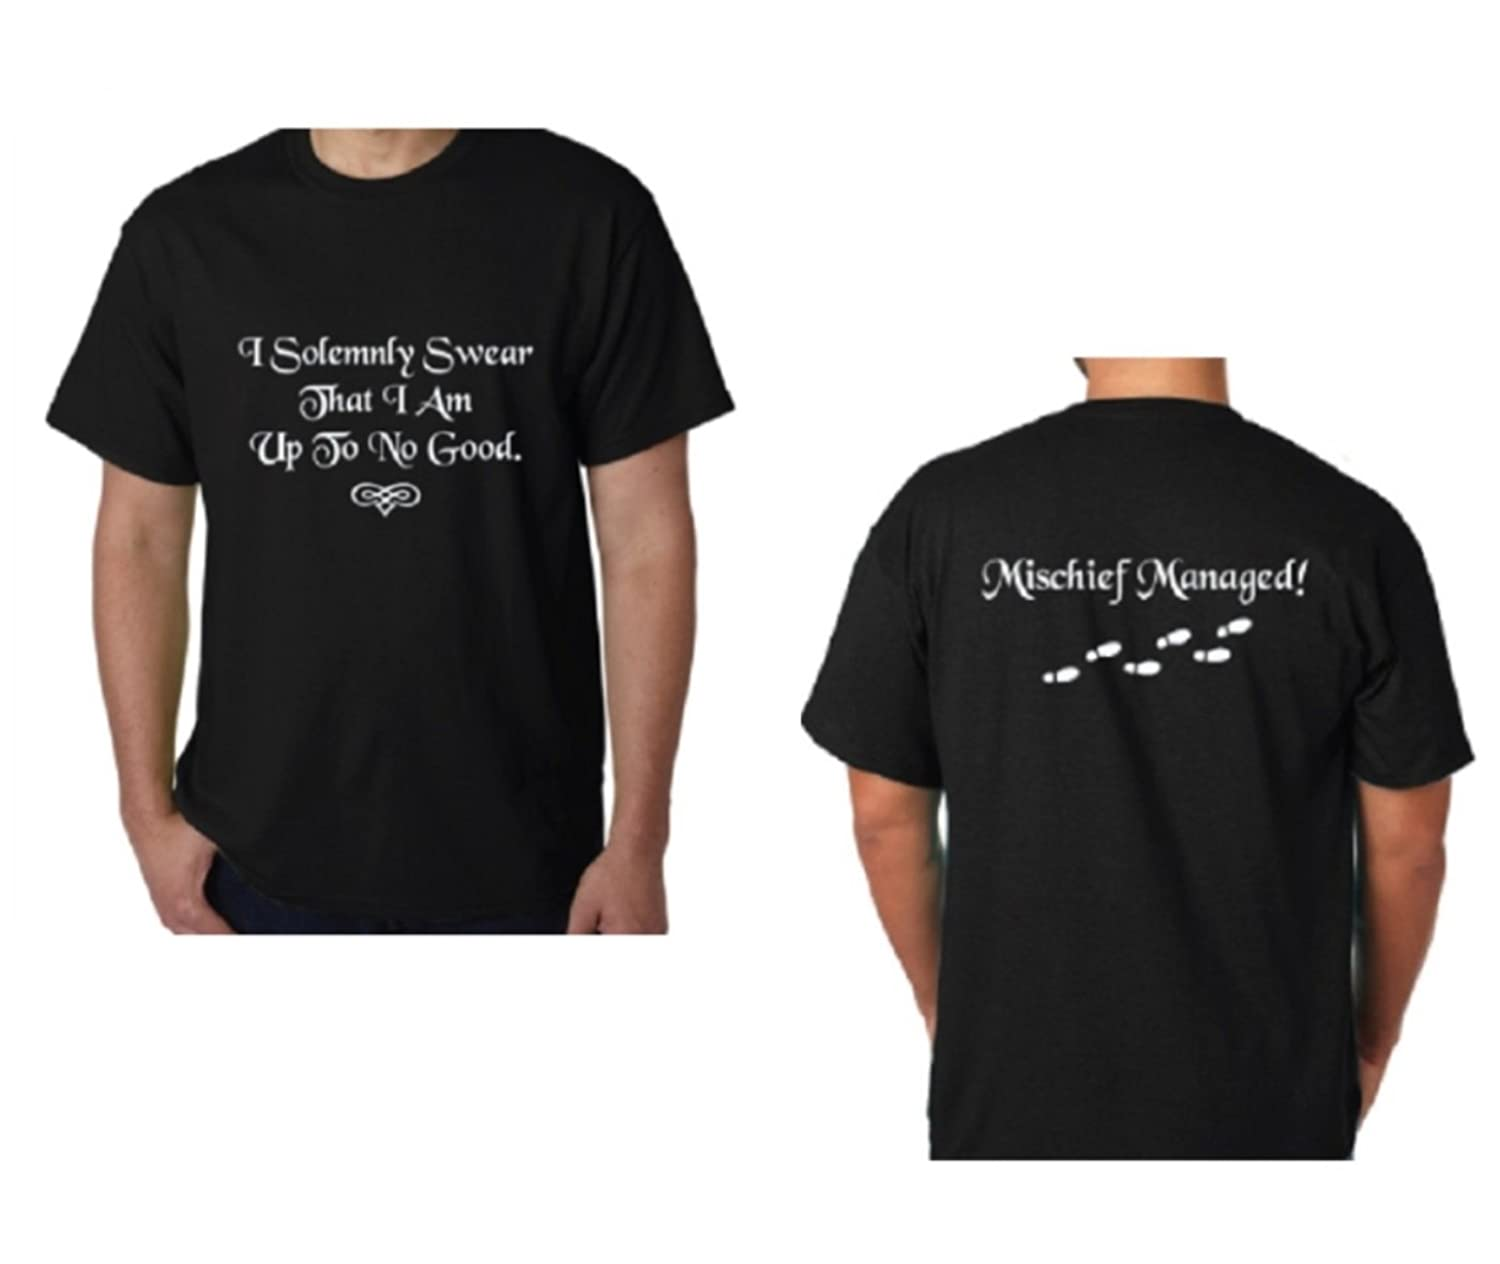 f0f930bd0 Top7: Monkeyshine Creations I Solemnly Swear That I Am up to No Good Harry  Potter Style Funny T-Shirt~Professionally Imprinted